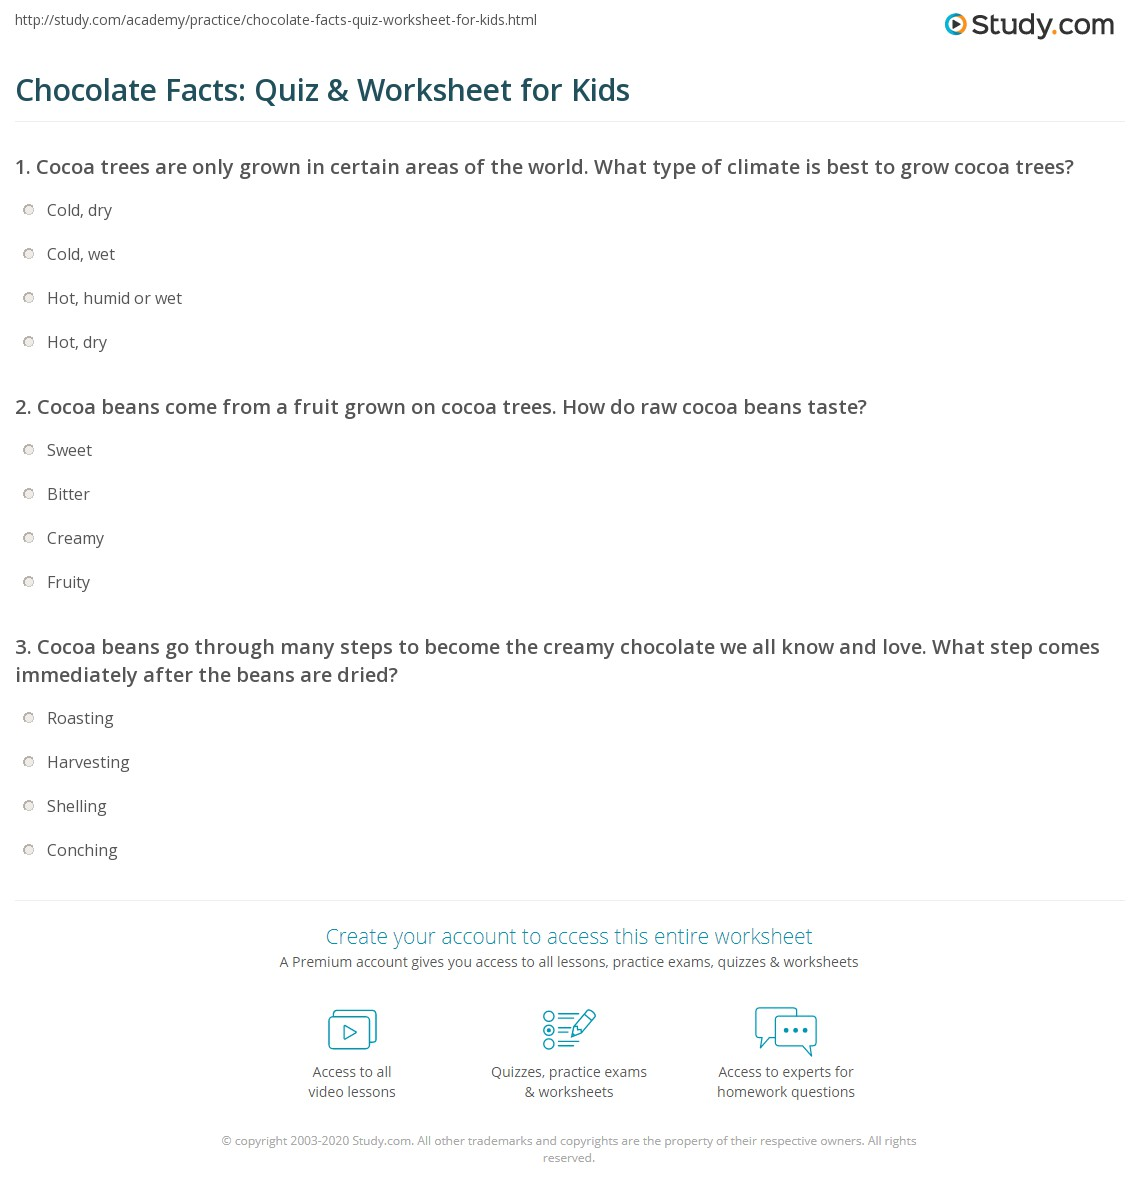 Chocolate Facts: Quiz & Worksheet for Kids | Study.com